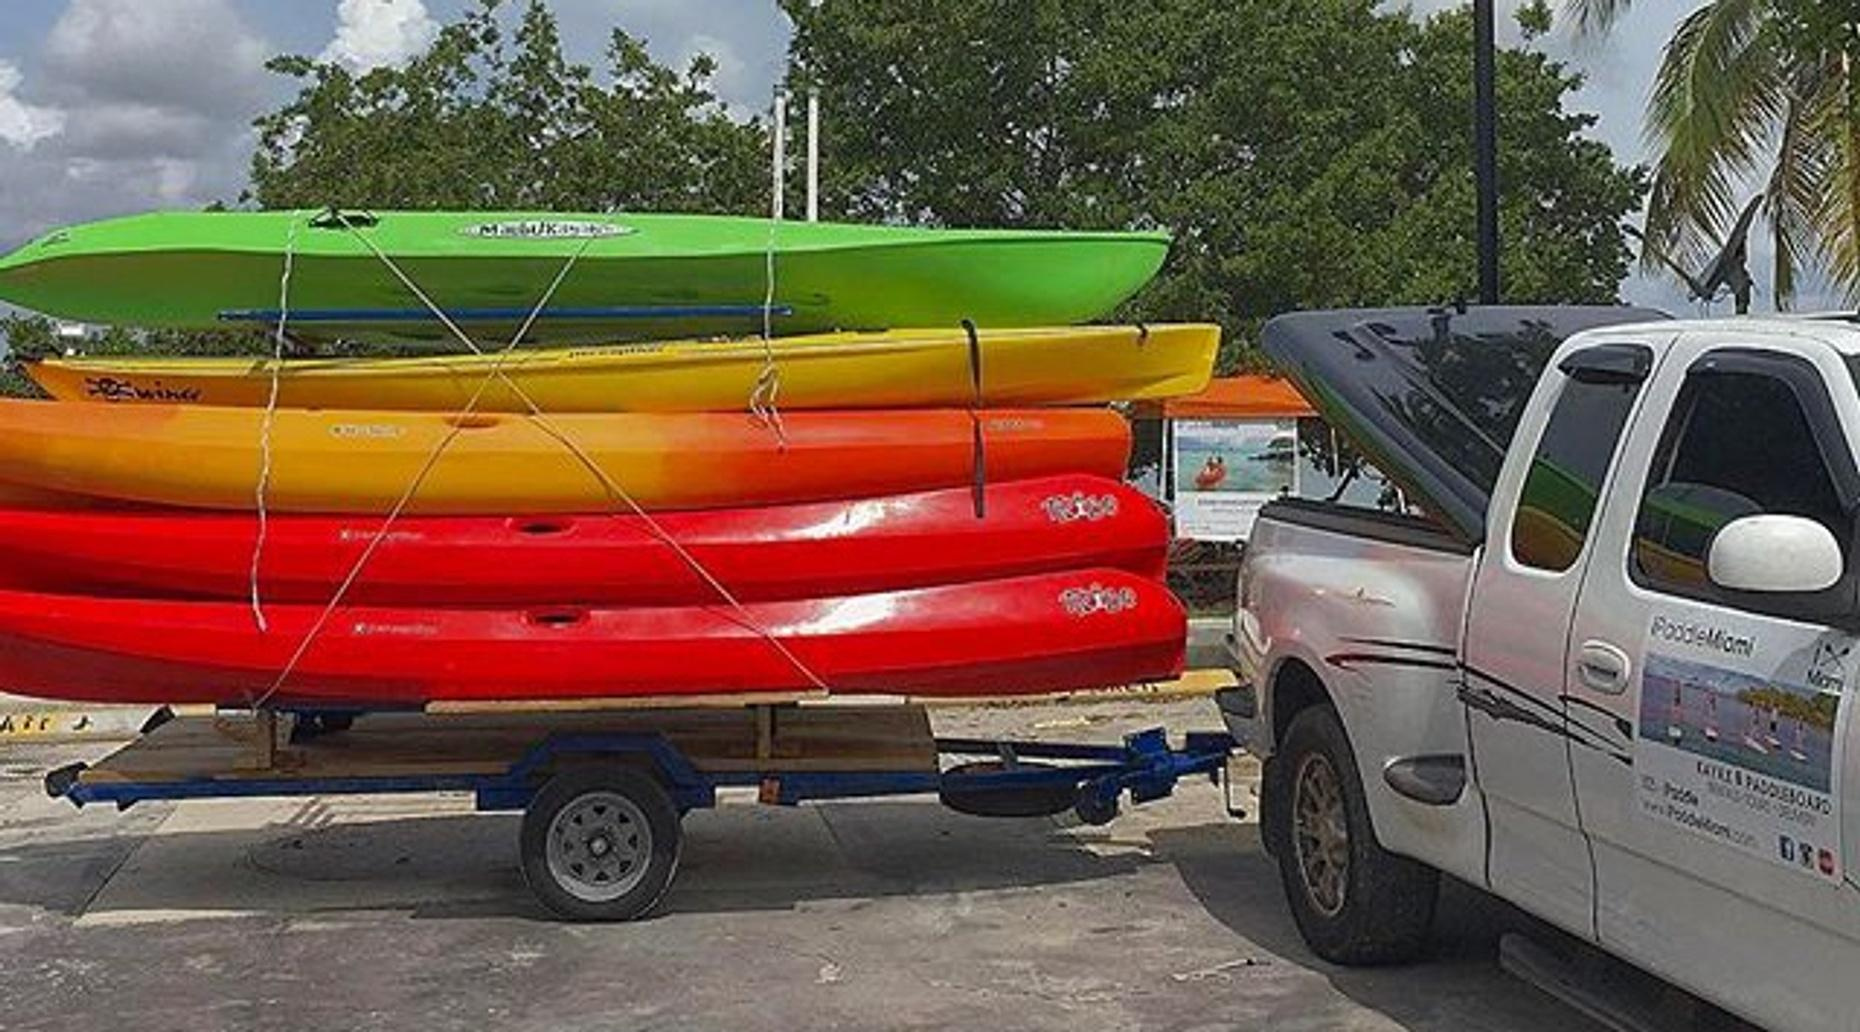 Kayak or Paddleboard Rental in Miami